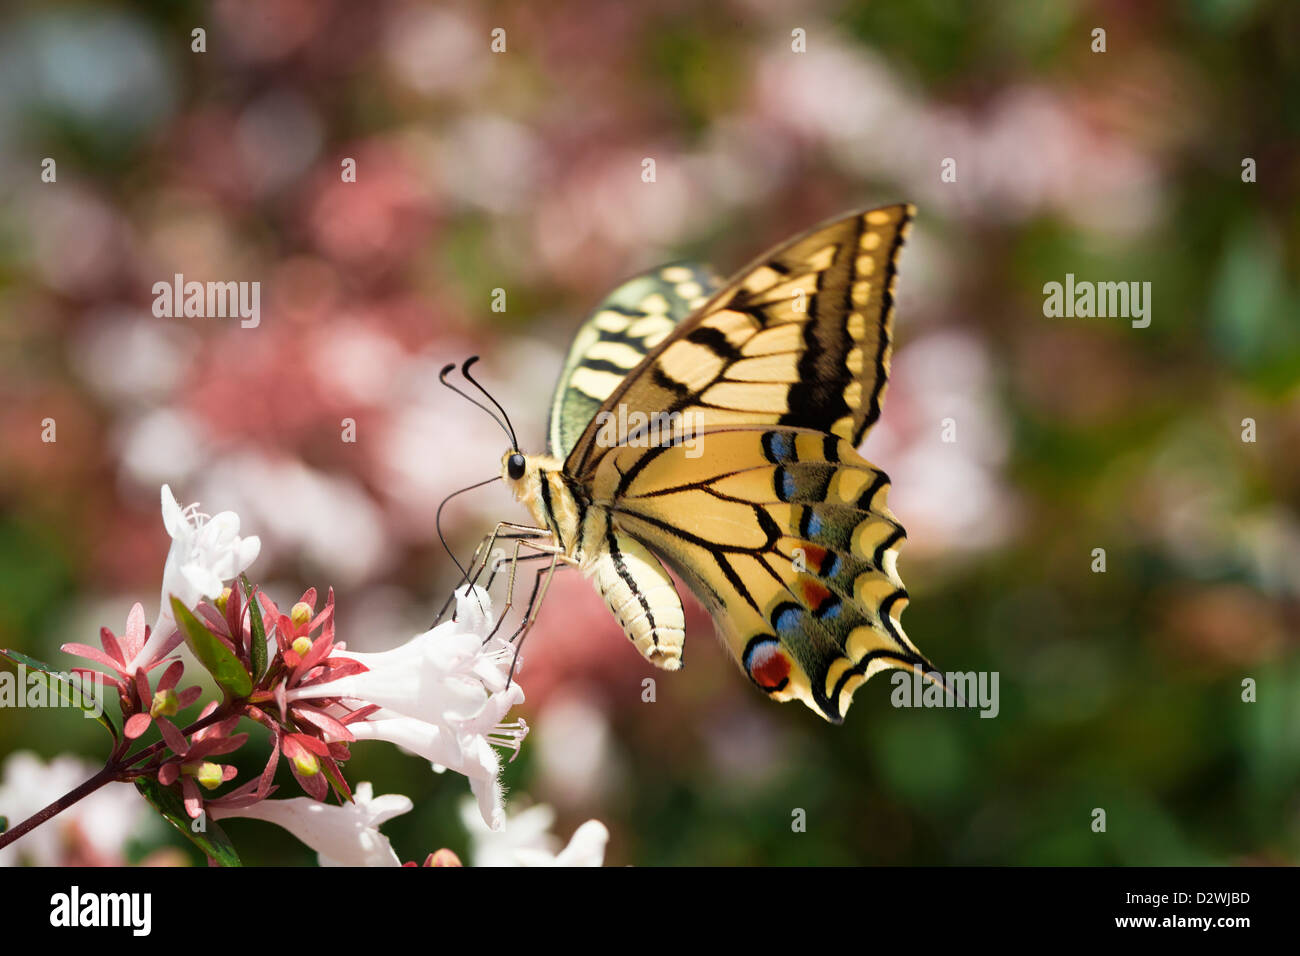 Yellow swallowtail butterfly (lepidoptera) sucking nectar from abelia flowers. - Stock Image